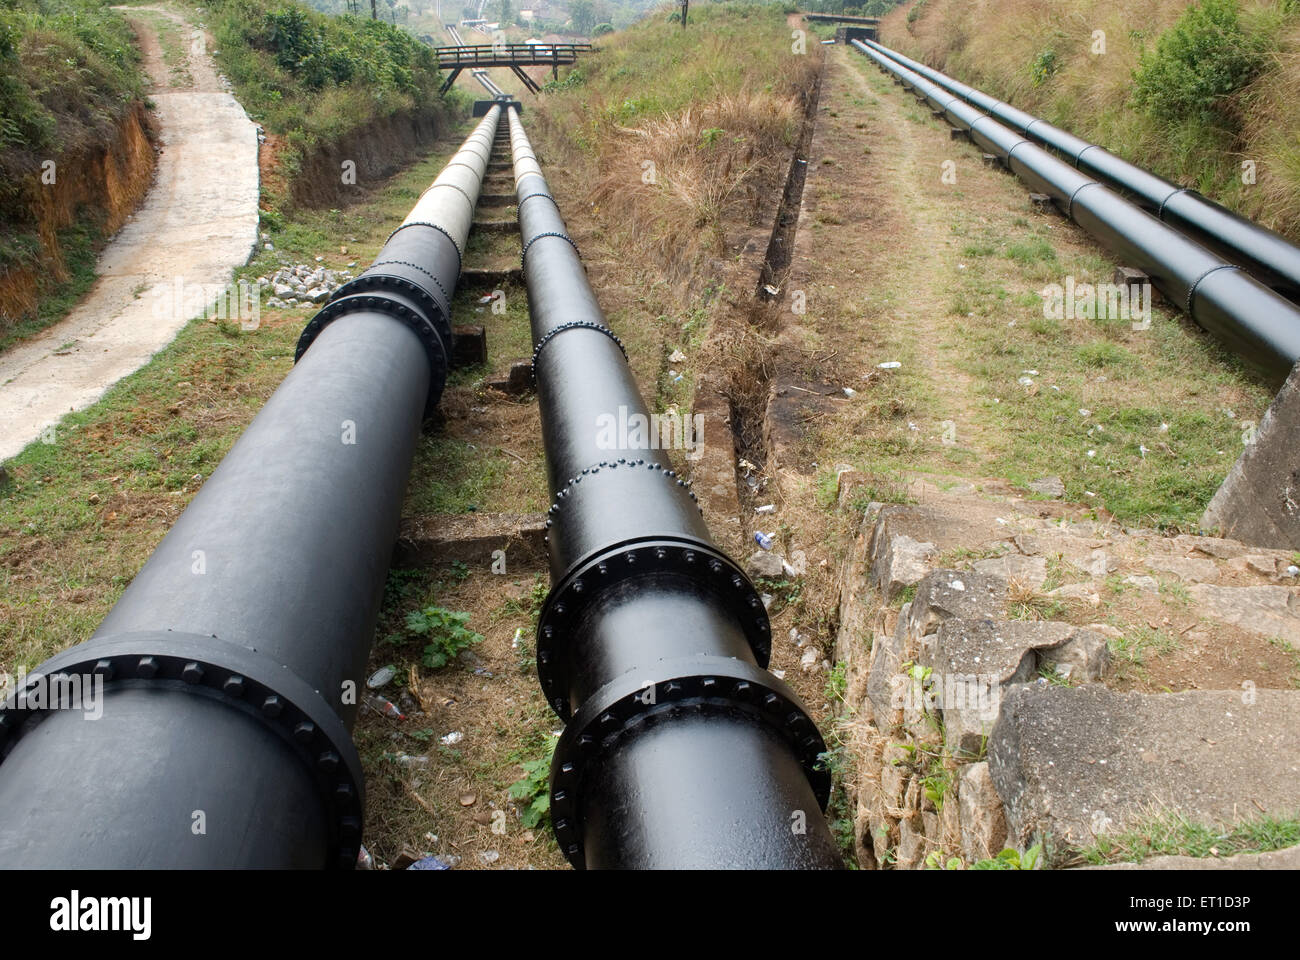 Pipe line for water supply for hydro electricity ; Munnar ; Kerala ; India - Stock Image